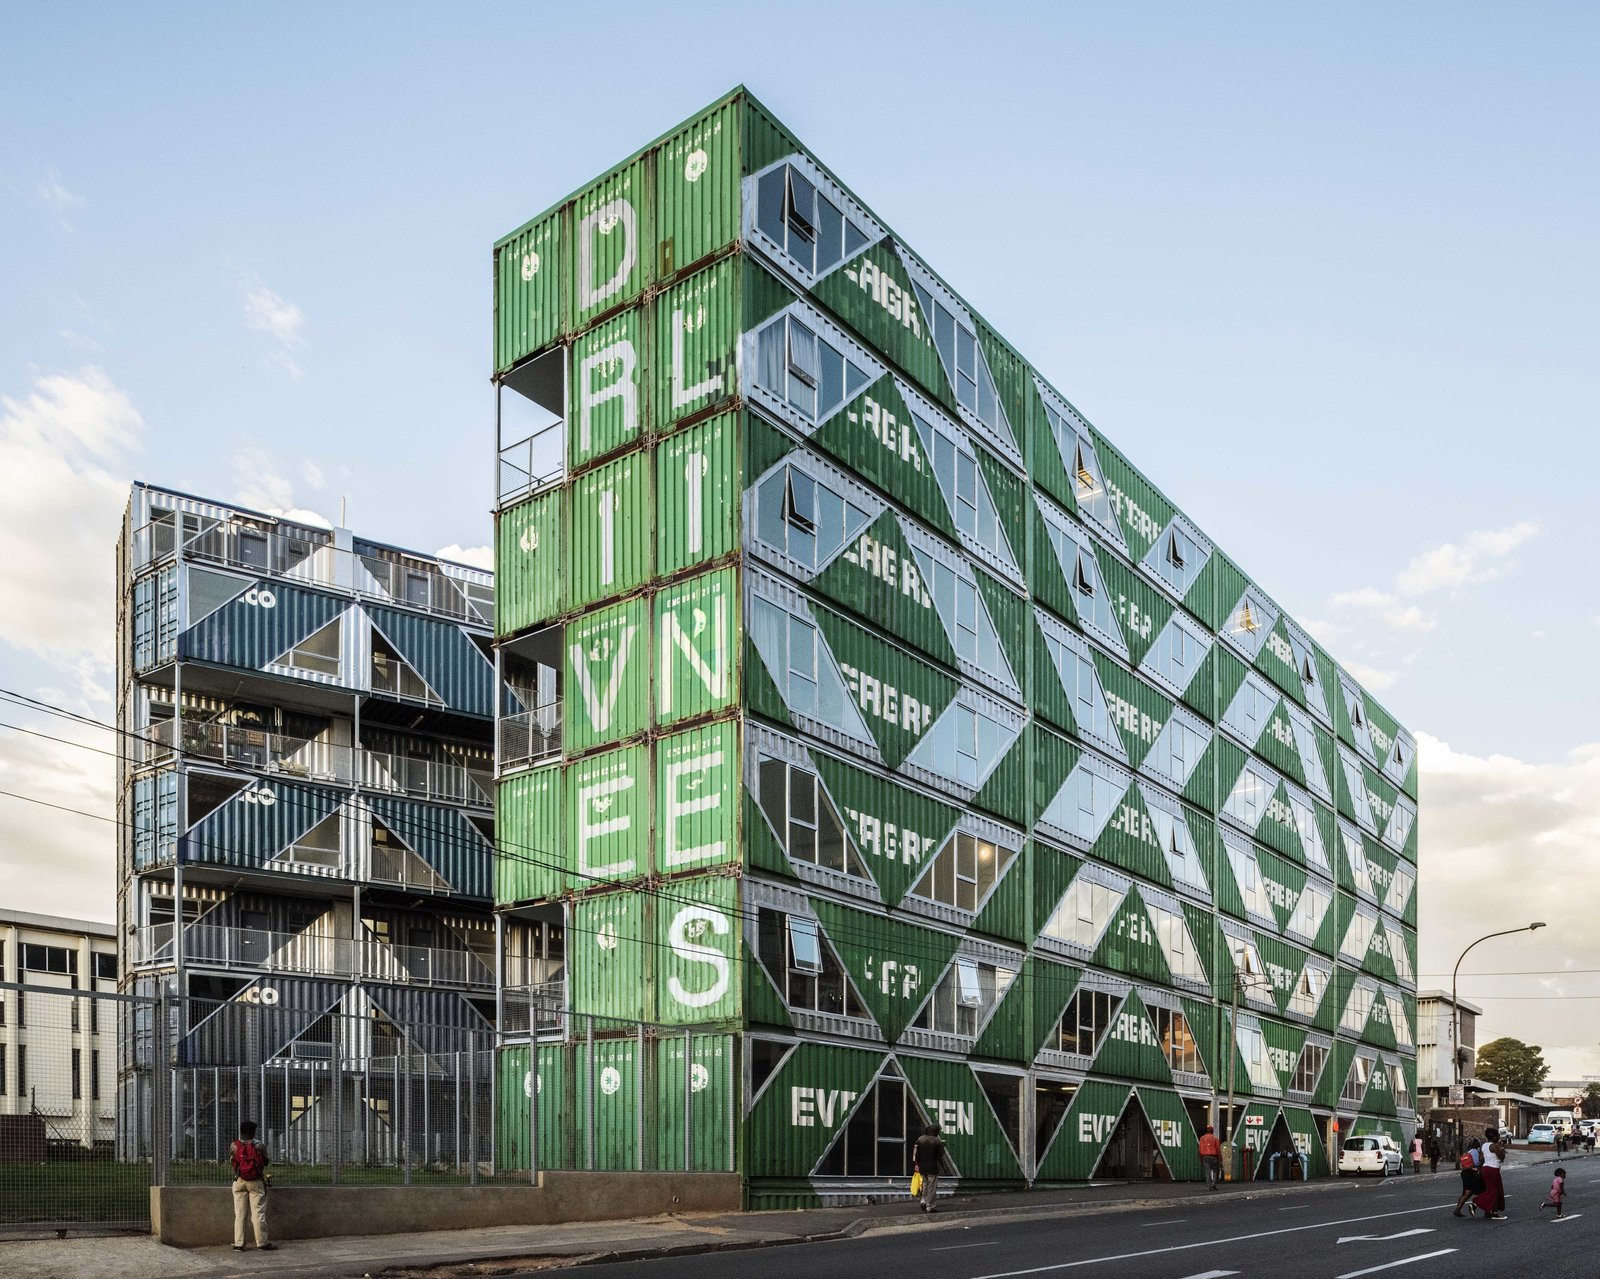 Stacked Shipping Containers Create a New Model For Urban Living in South Africa